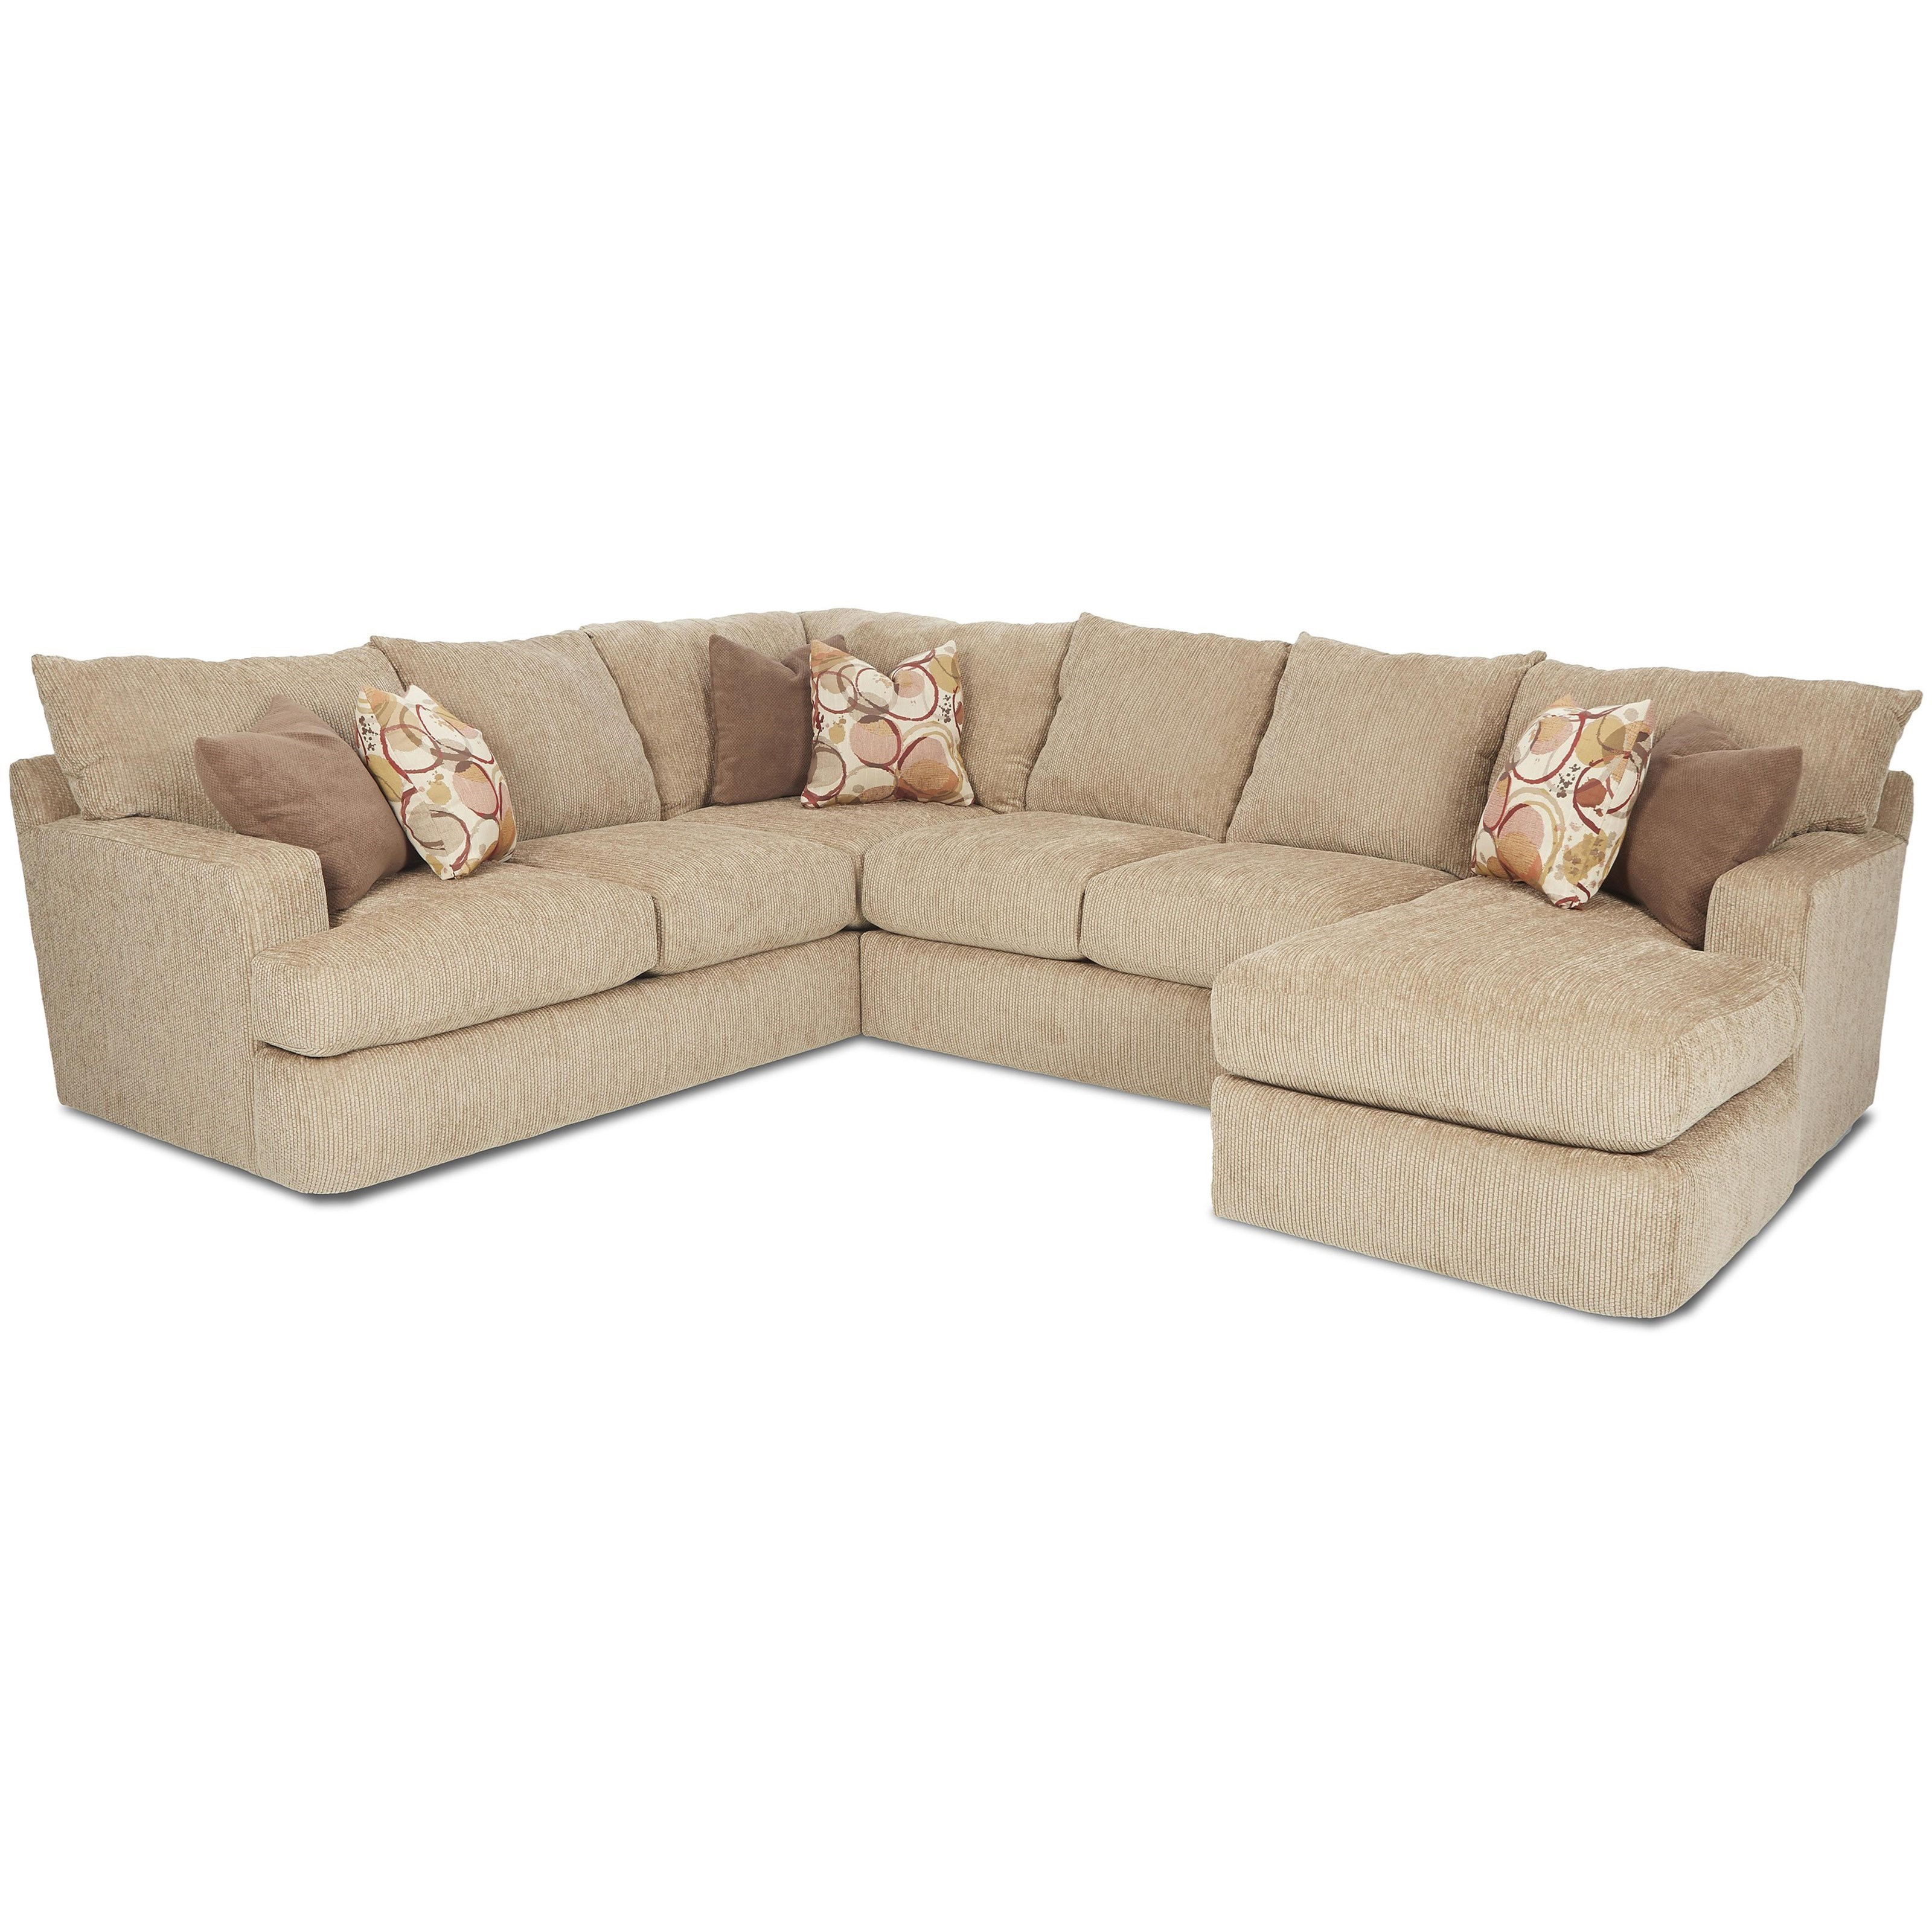 klaussner oliver contemporary three piece sectional sofa dunk rh dunkandbright com klaussner bentley casual sectional sofa with slipcover klaussner fletcher sectional sofa